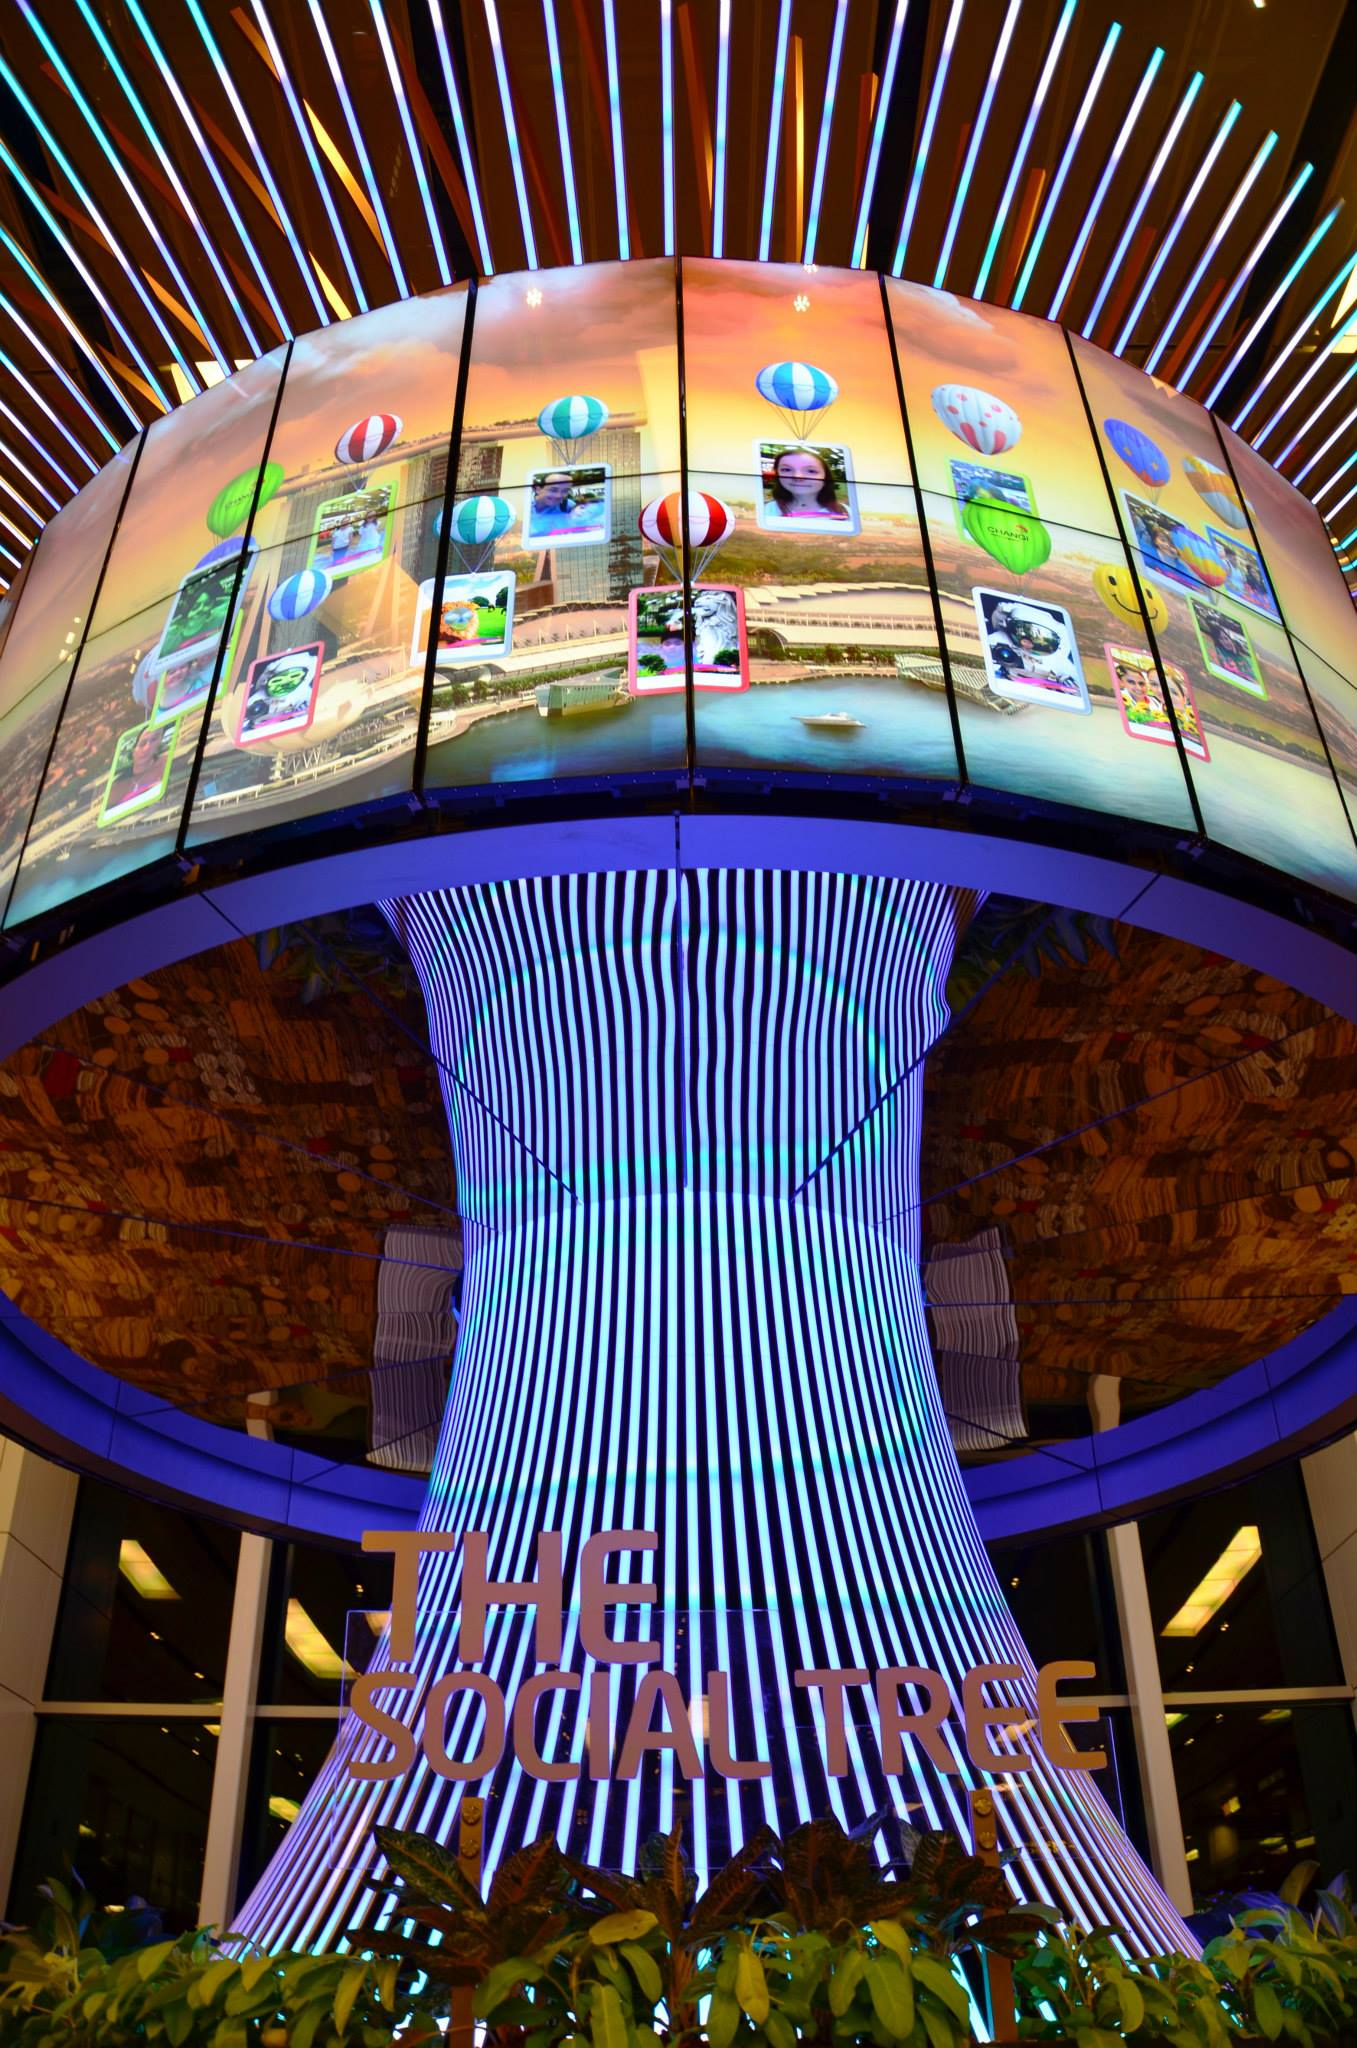 The Social Tree di Terminal 1 Bandara Changi Singapura. (Foto: KeJia - Changi International Airport)